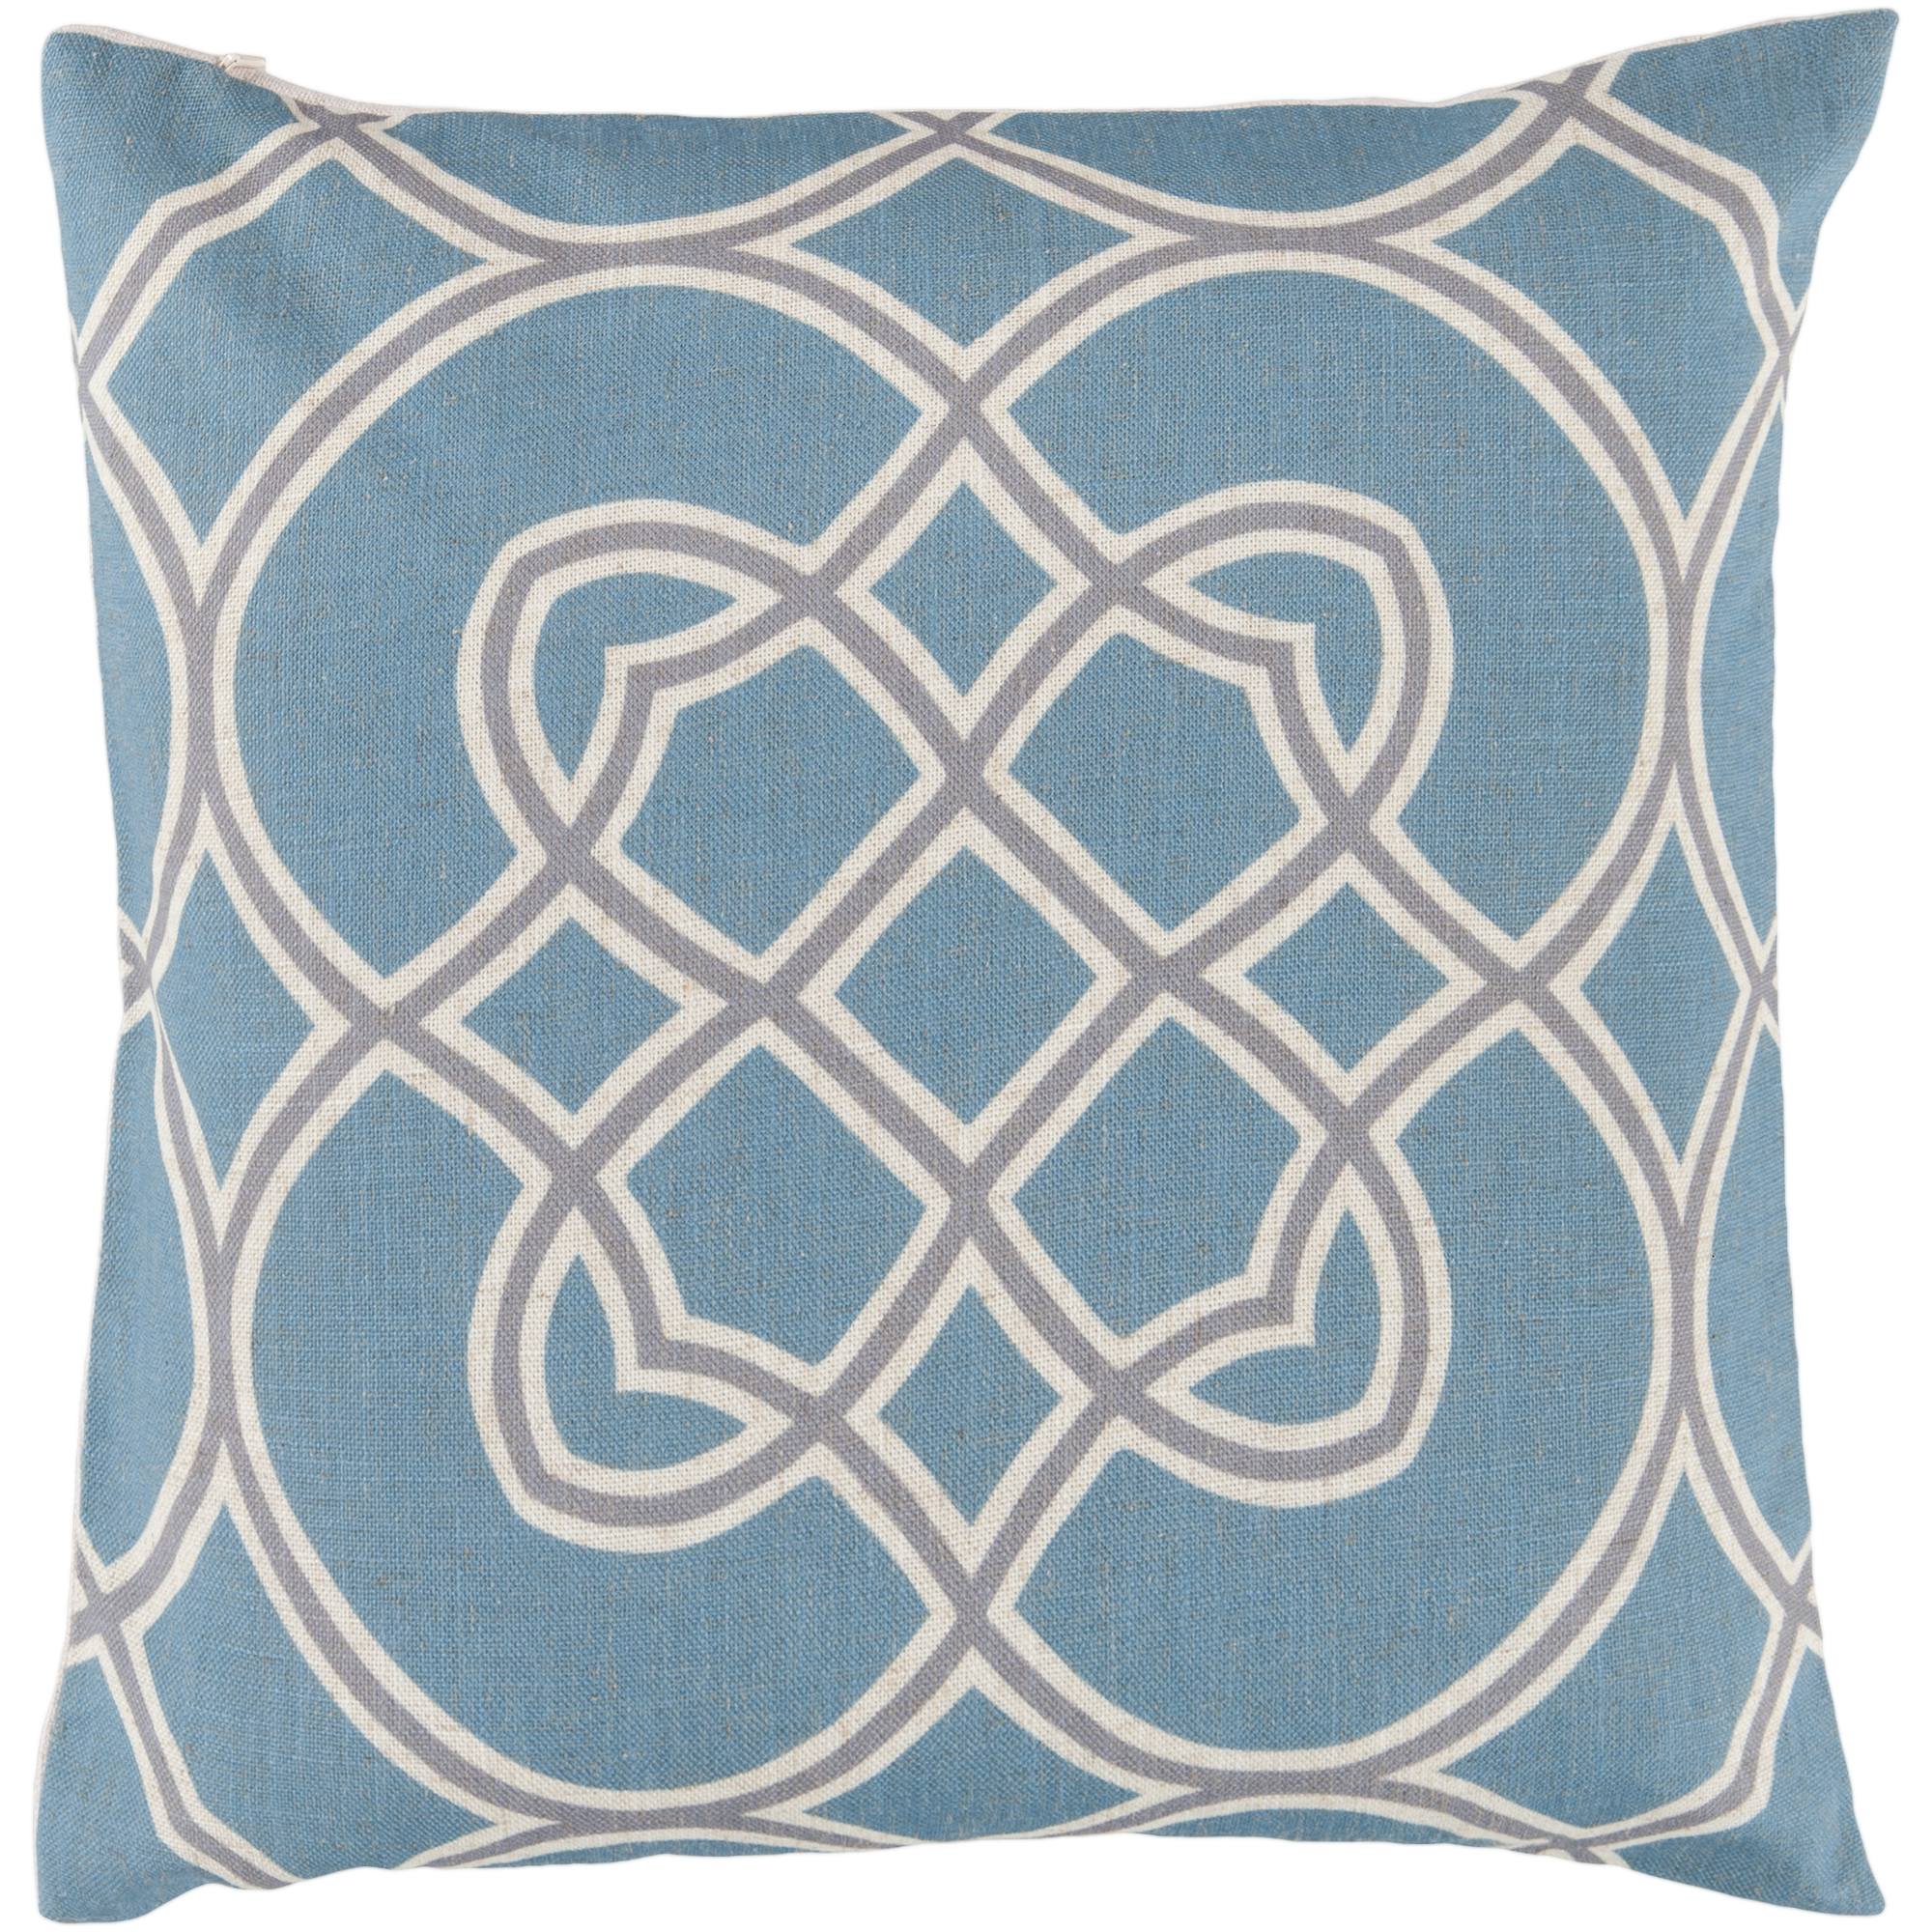 "Art of Knot Cagliari 18"" x 18"" Pillow (with Down Fill)"